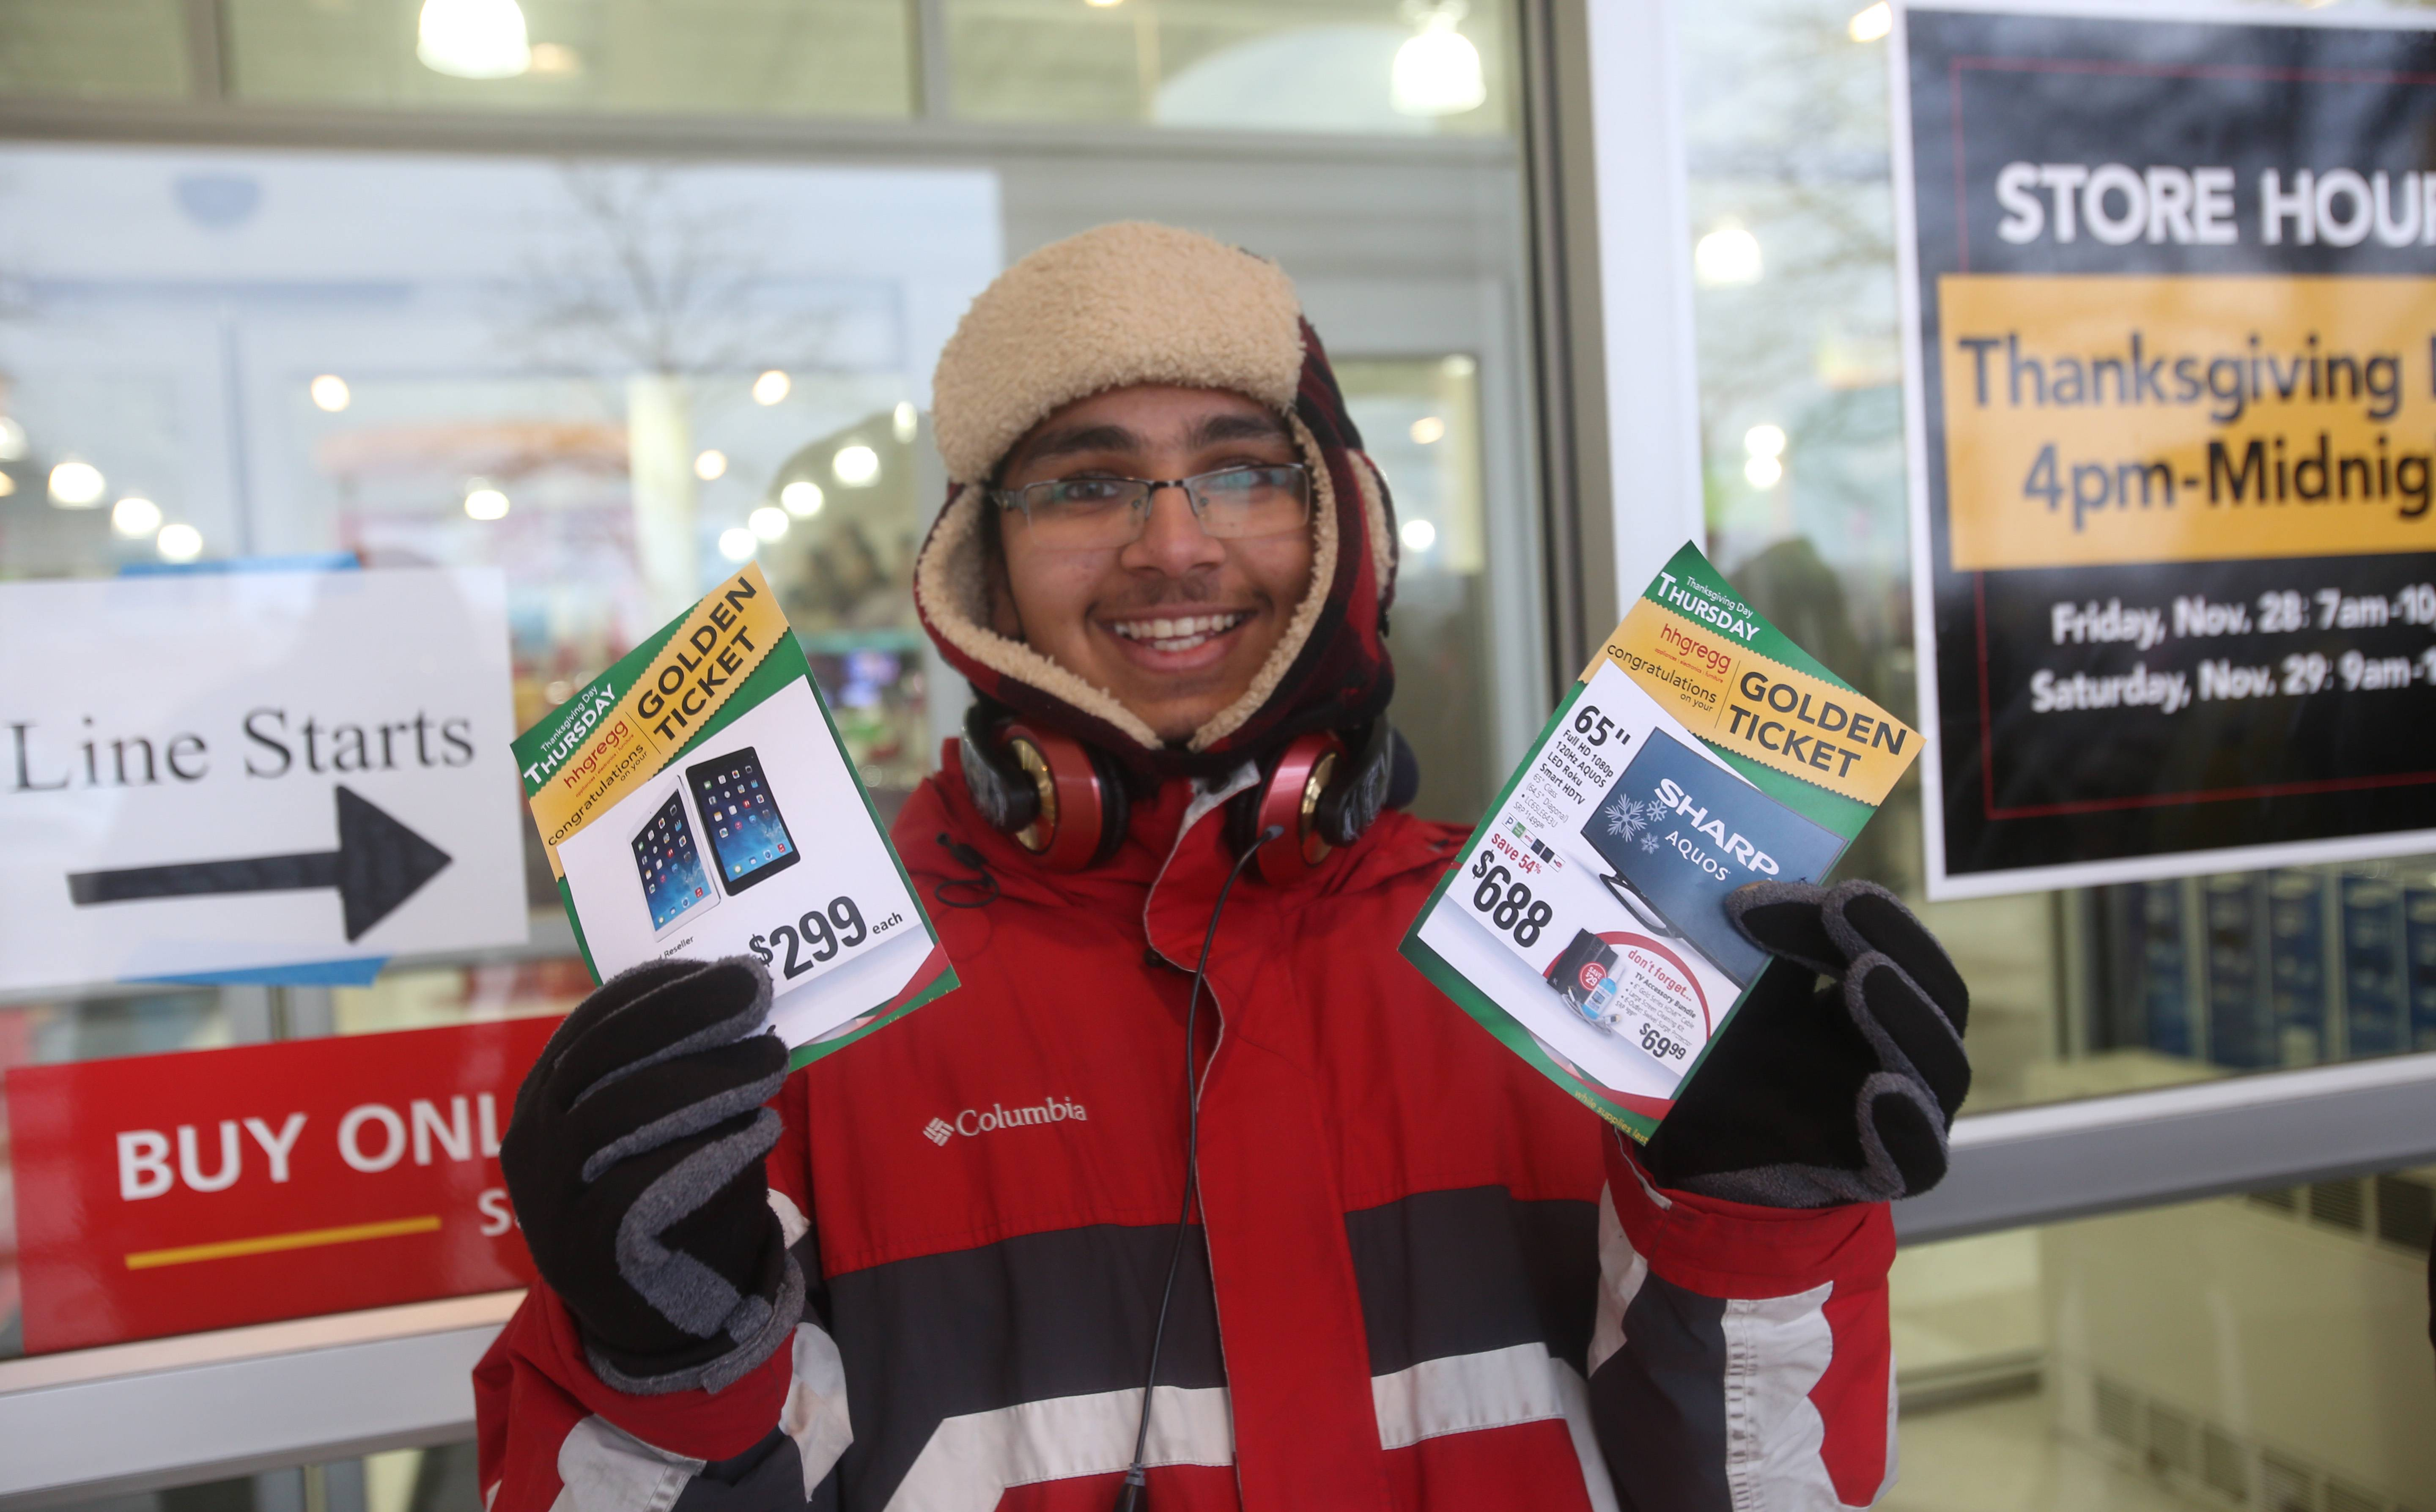 Rishabh Saxena of Hoffman Estates is first in line Thanksgiving night and displays a golden ticket to get a discounted iPad and flatscreen TV at the HHGregg Appliances and Electronic Store in Schaumburg .